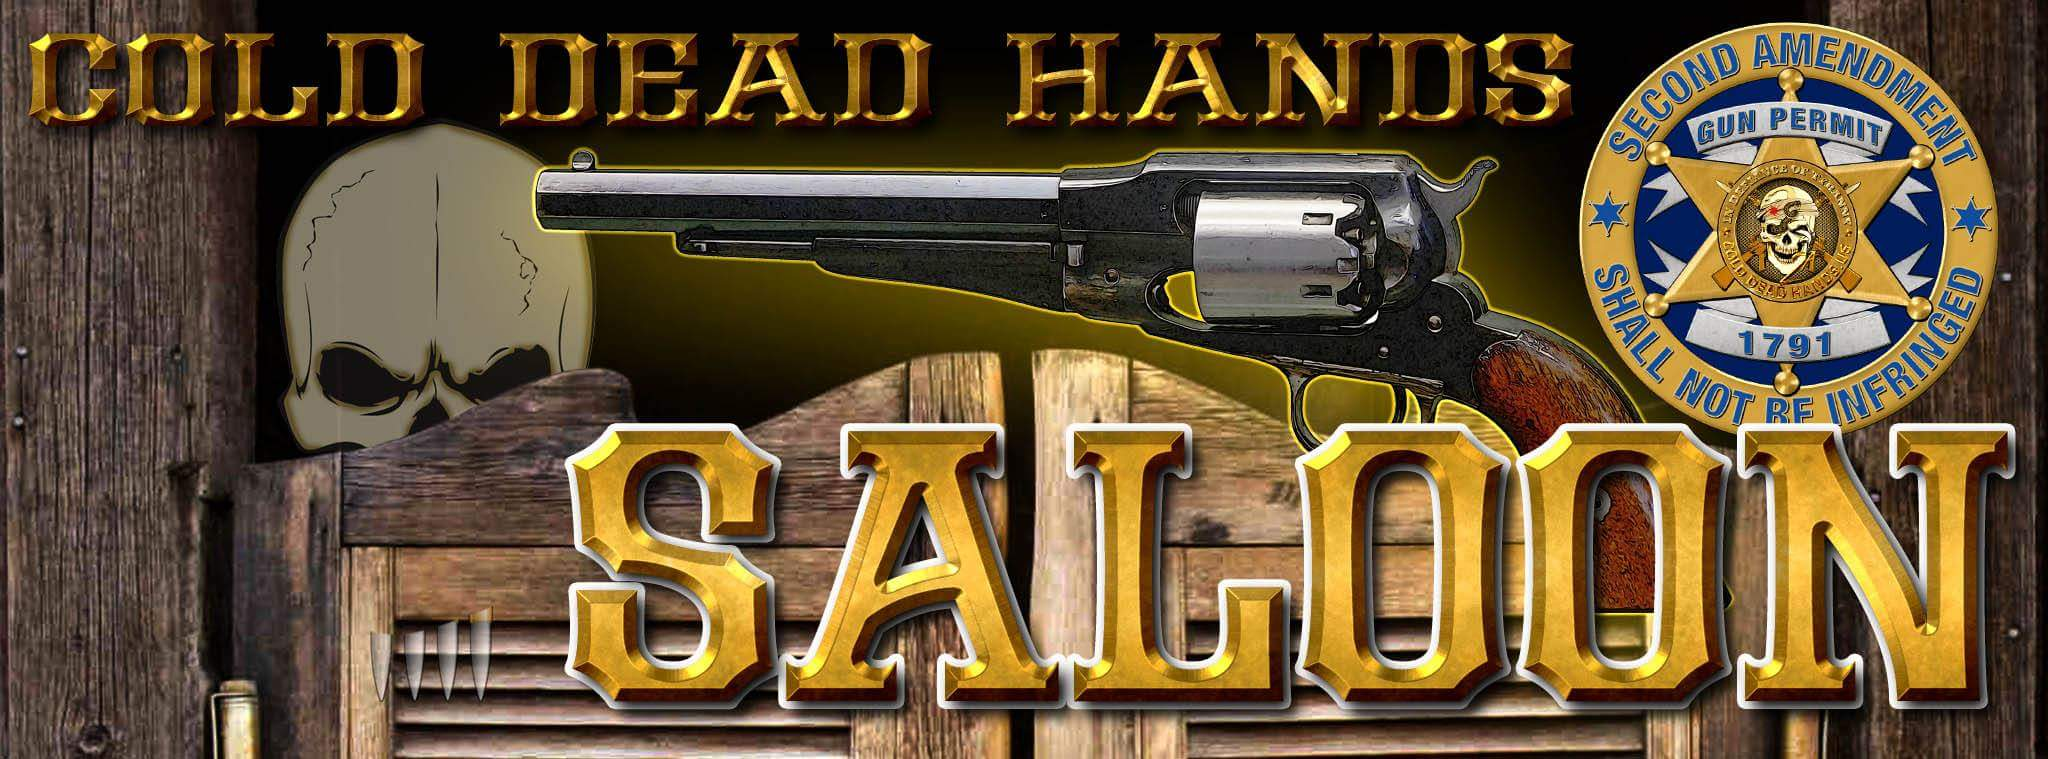 Cold Dead Hands Saloon